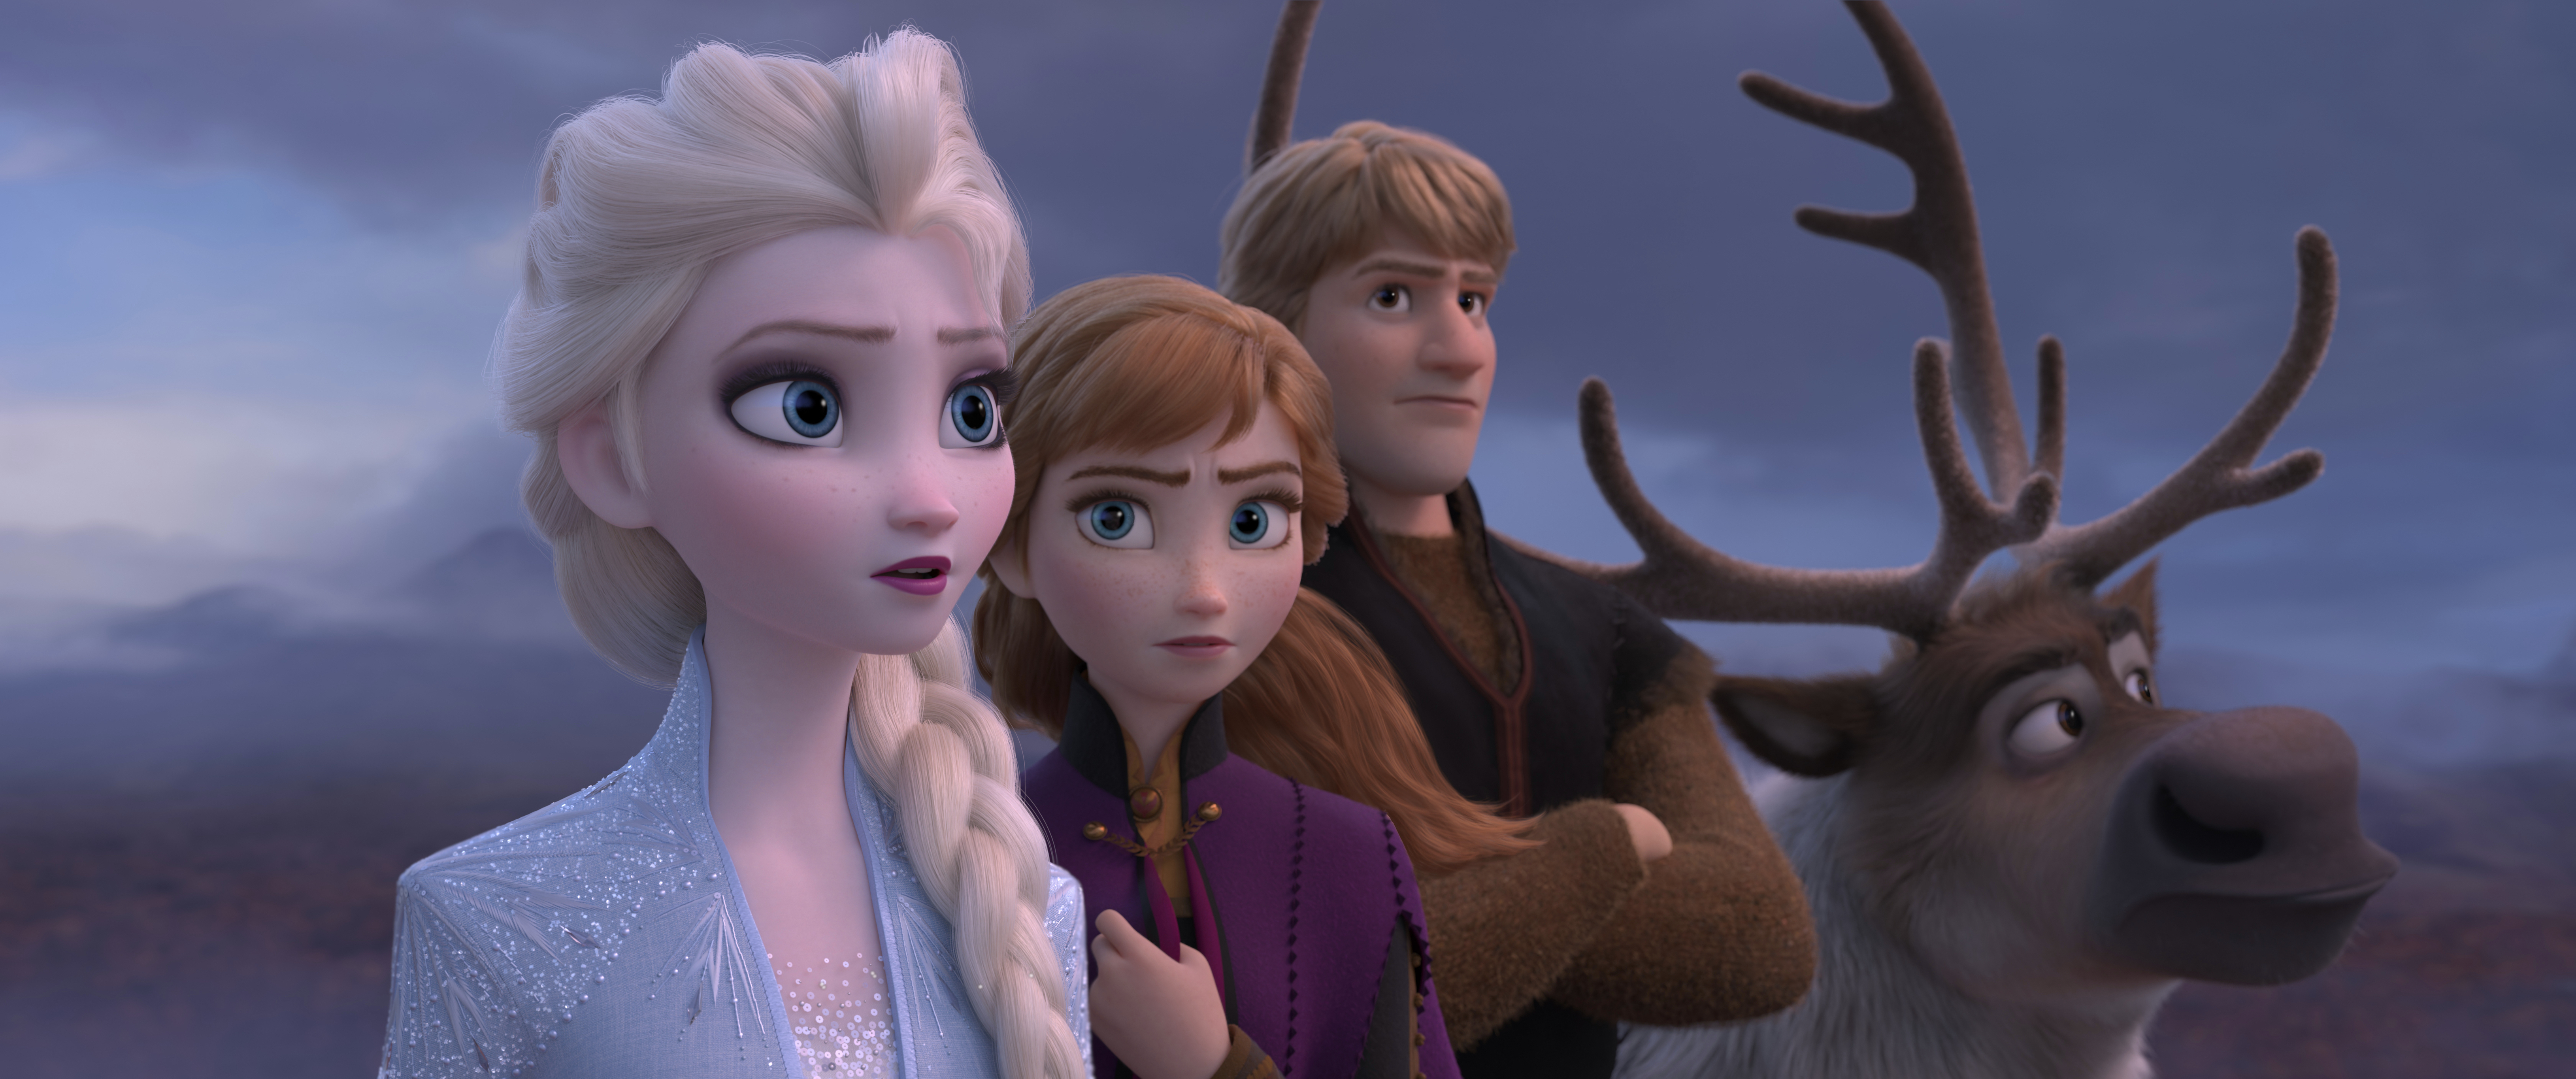 """Frozen 2"" opens in U.S. theaters on Nov. 22, 2019."